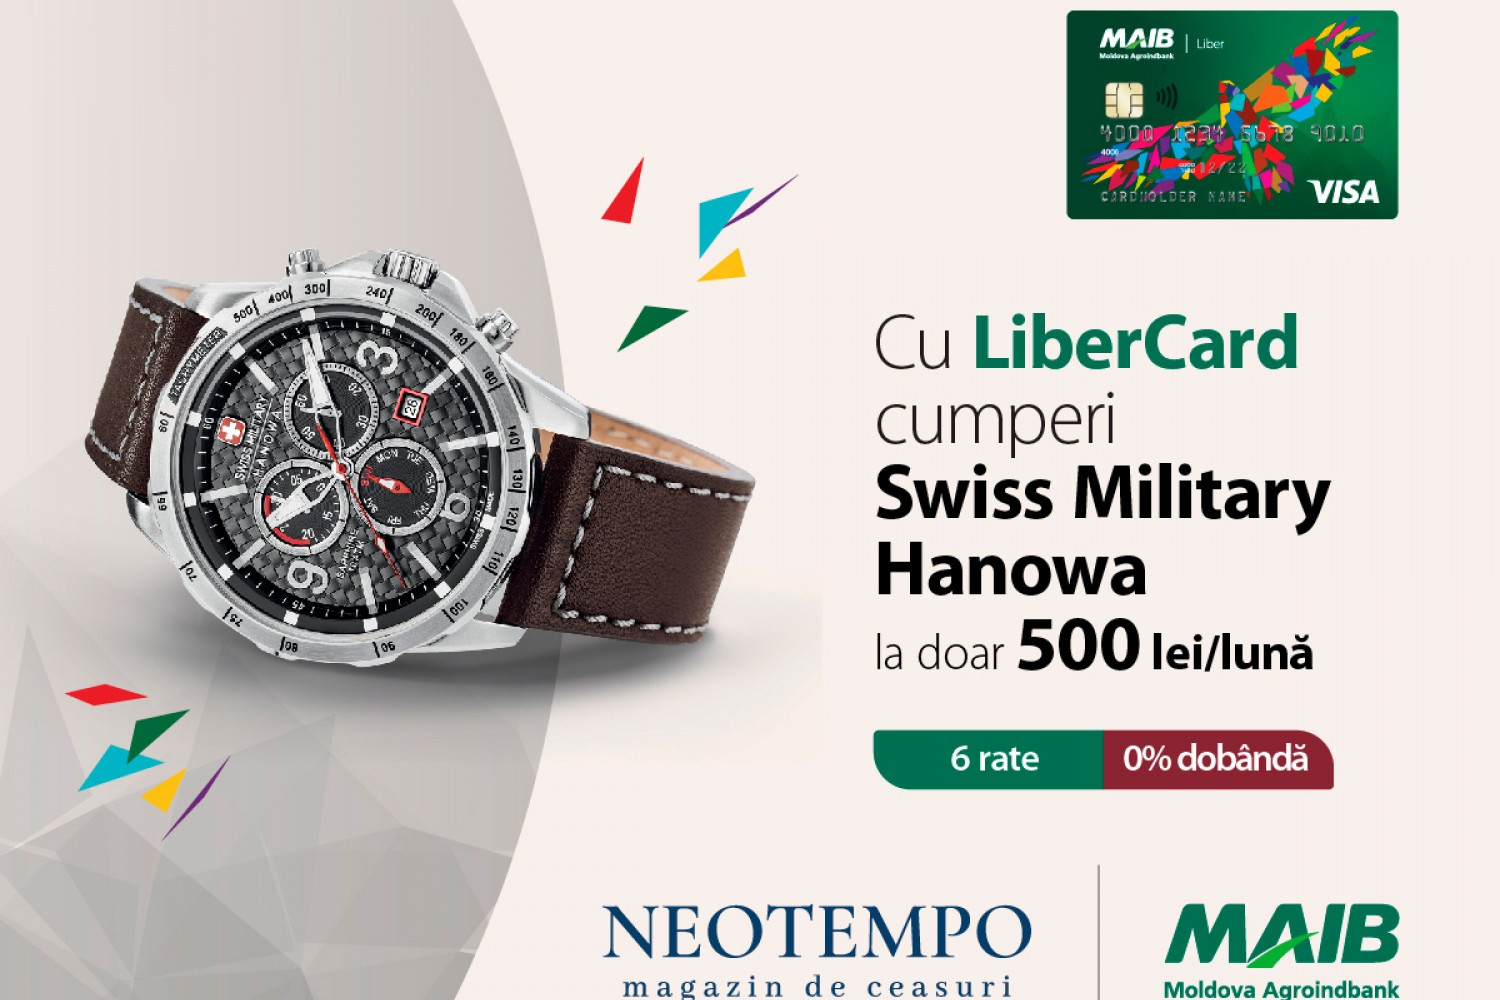 <p><strong>Prinde aripi la NEOTEMPO</strong><strong> </strong><strong>cu LiberCard de la MAIB!</strong></p>